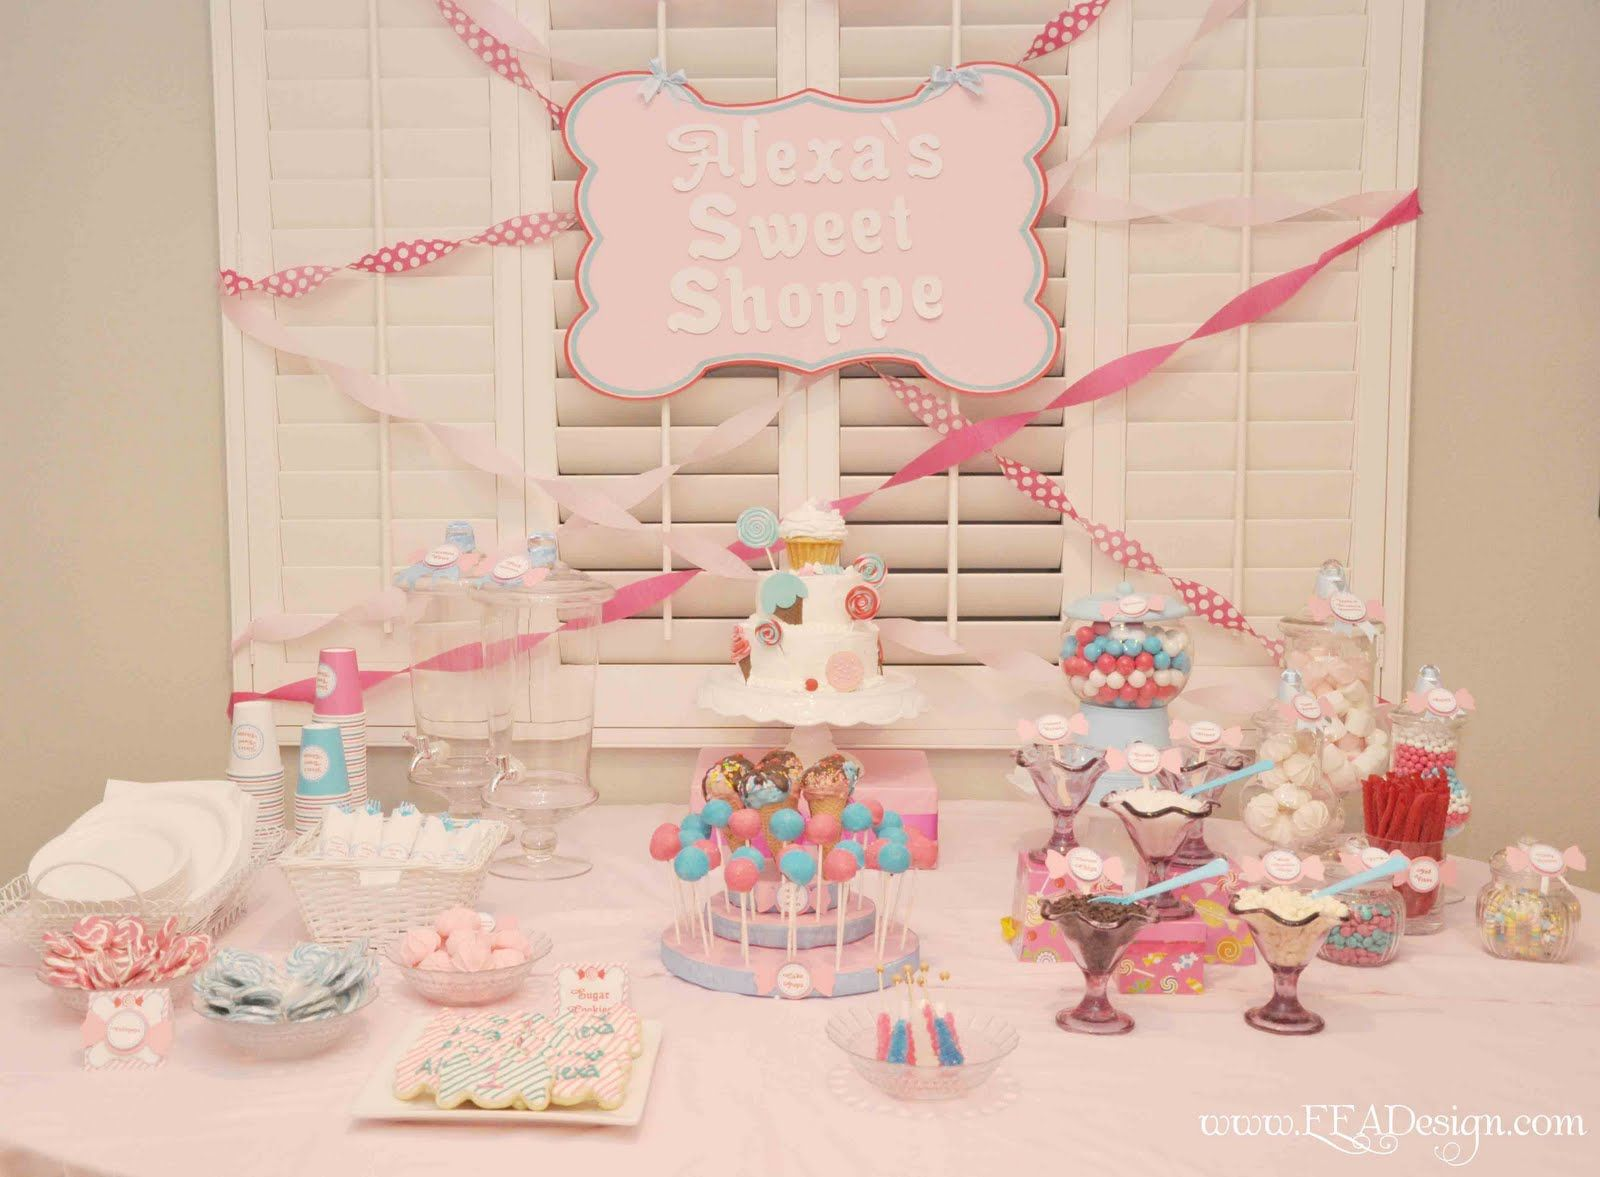 Birthday craft ideas for girls - 50 Birthday Party Themes For Girls